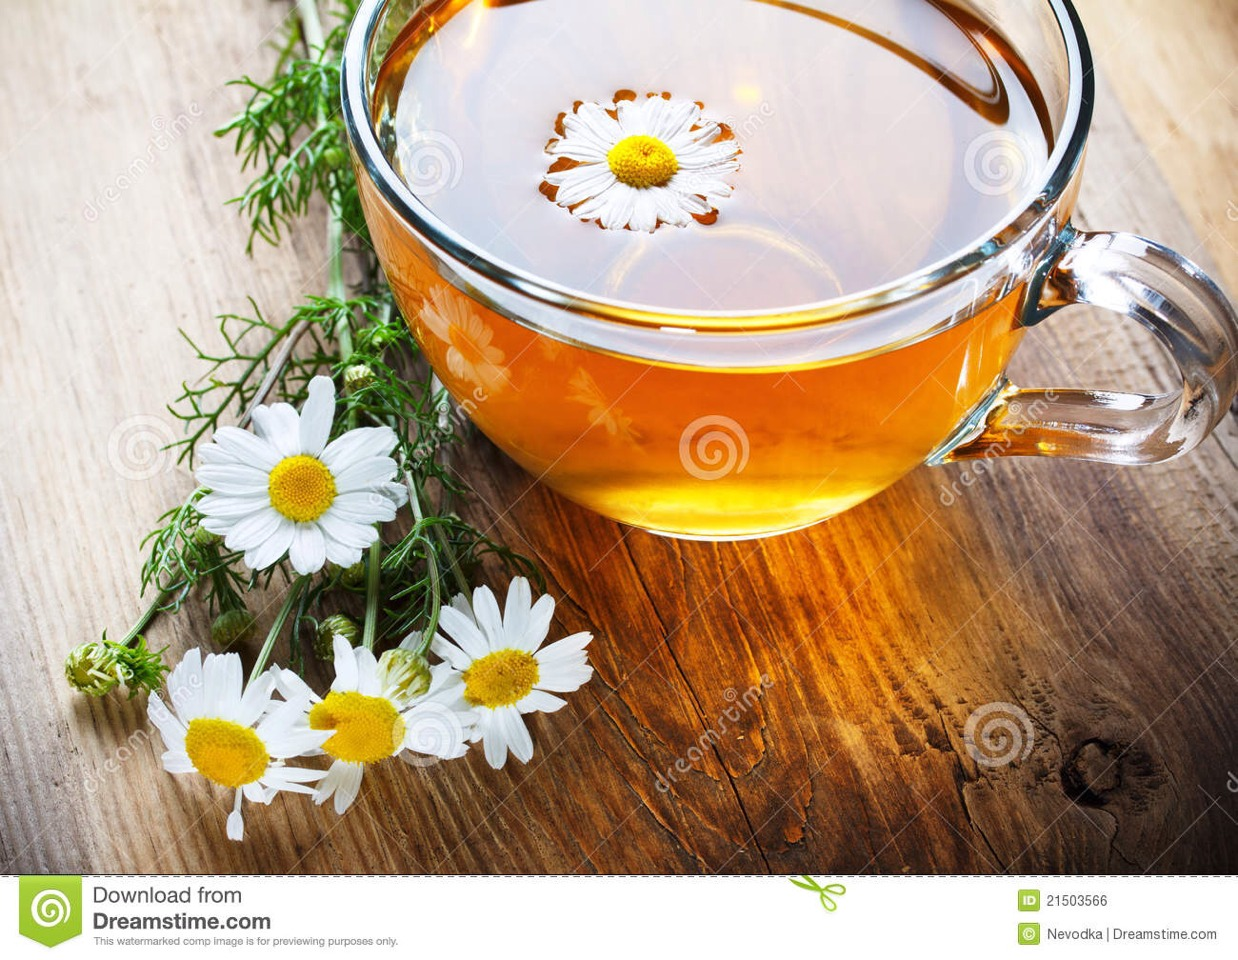 Putting lemon on your hair to lighten it will dry it out, NOT if you use this trick. Mix chamomile tea with lemon juice instead of leave in conditioner then sit in the sun or use a hair dryer, this will activate the mixture and lighten your hair whilst conditioning it.